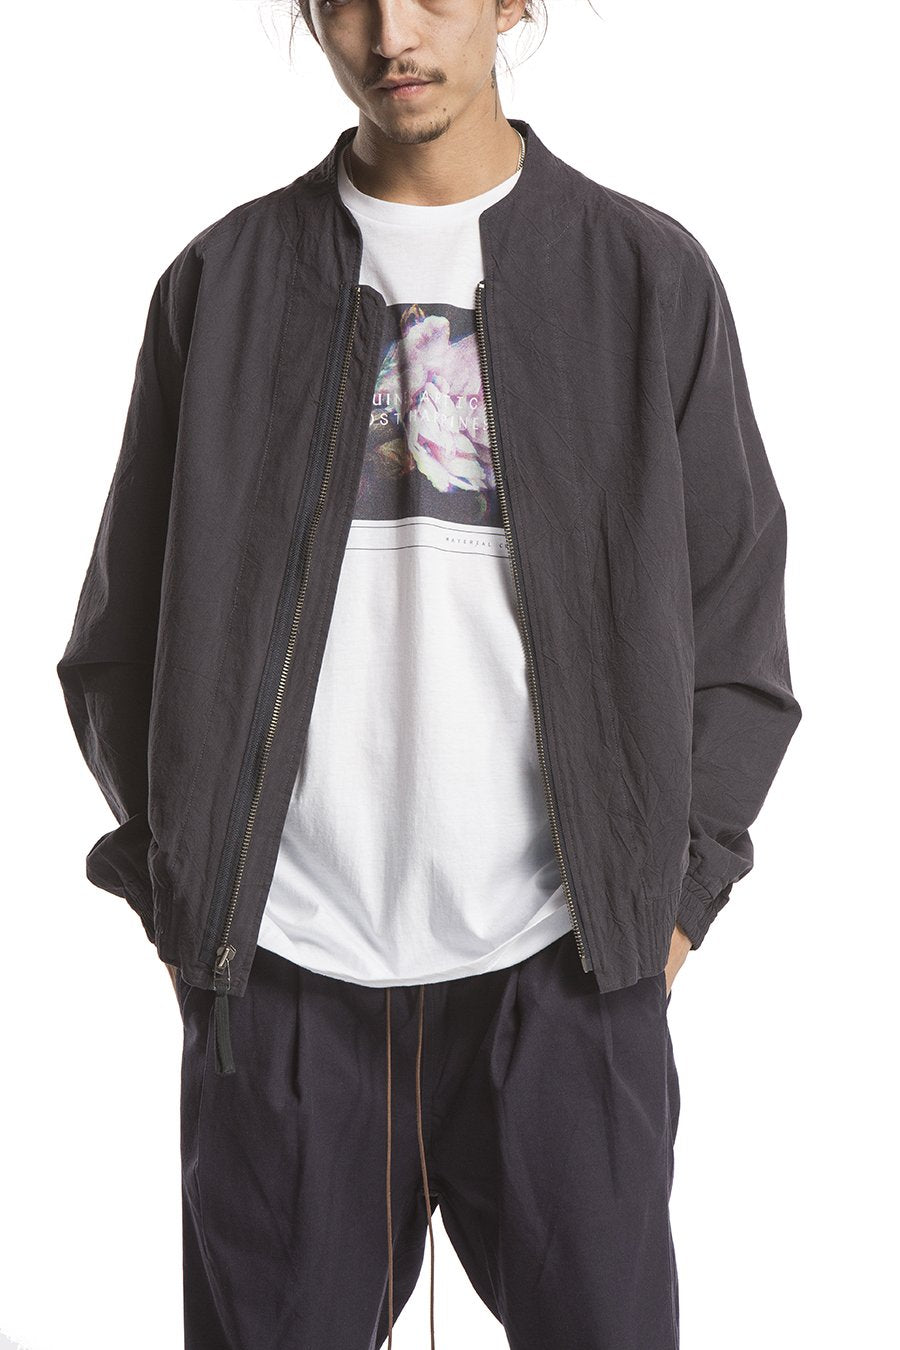 candorofficial - BLOUSSON BOMBER JACKET - Outerwear